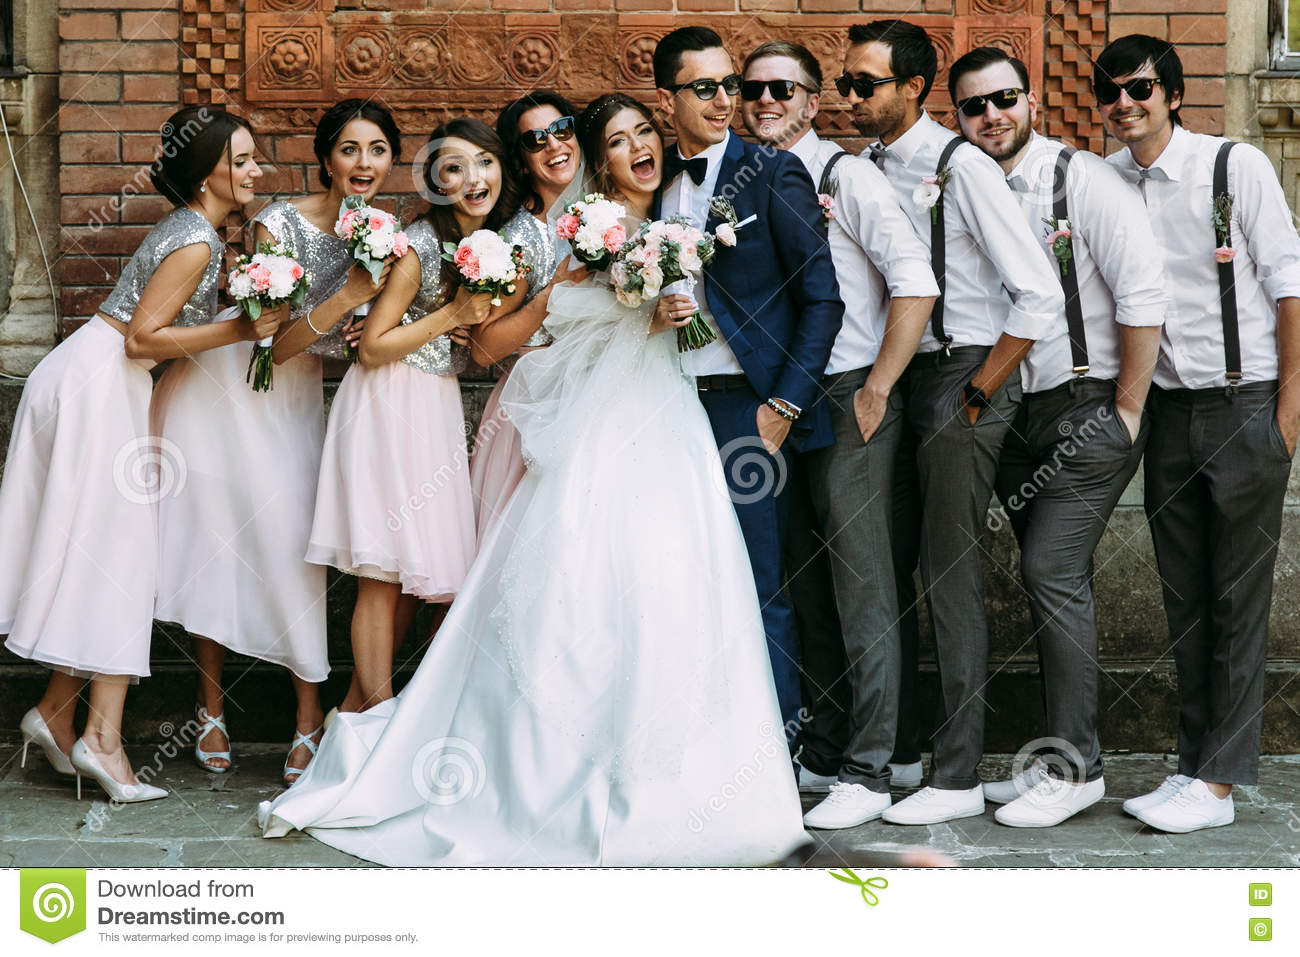 Wedding Gifts For Young Couples: Young Couple With The Funny Friends On The Wedding Stock